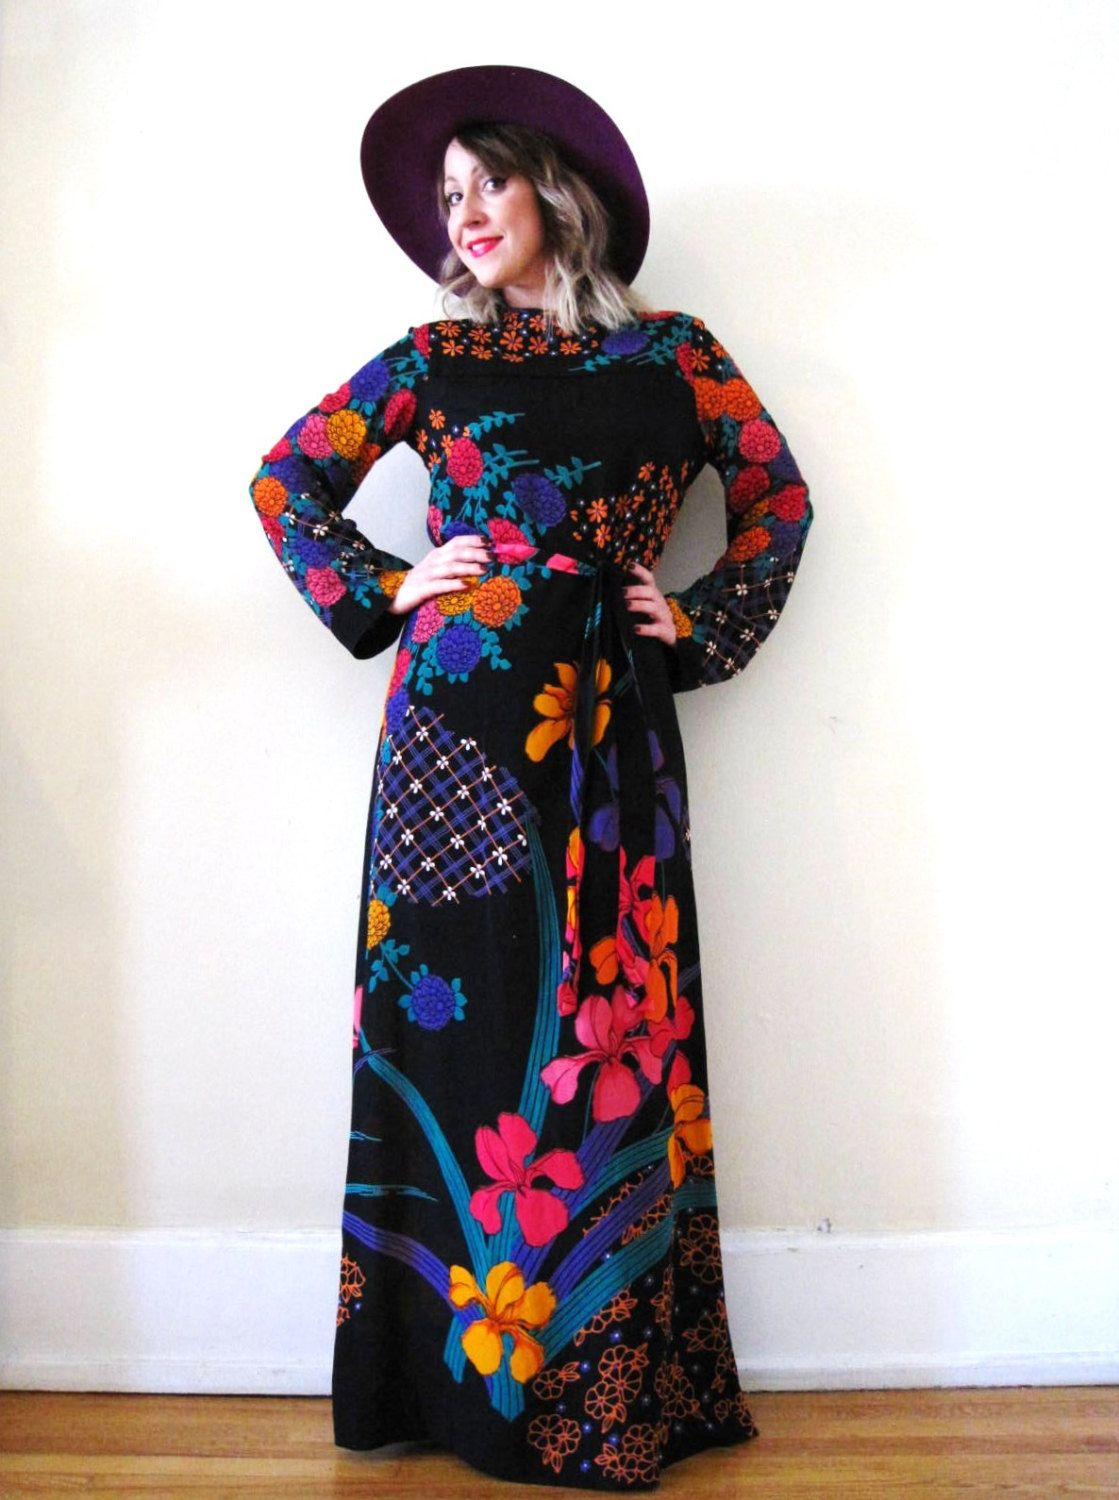 vintage 60s 70s bright floral black maxi dress Malcolm Starr Ritzkallah hippie boho psychedelic by detroitdolly on Etsy